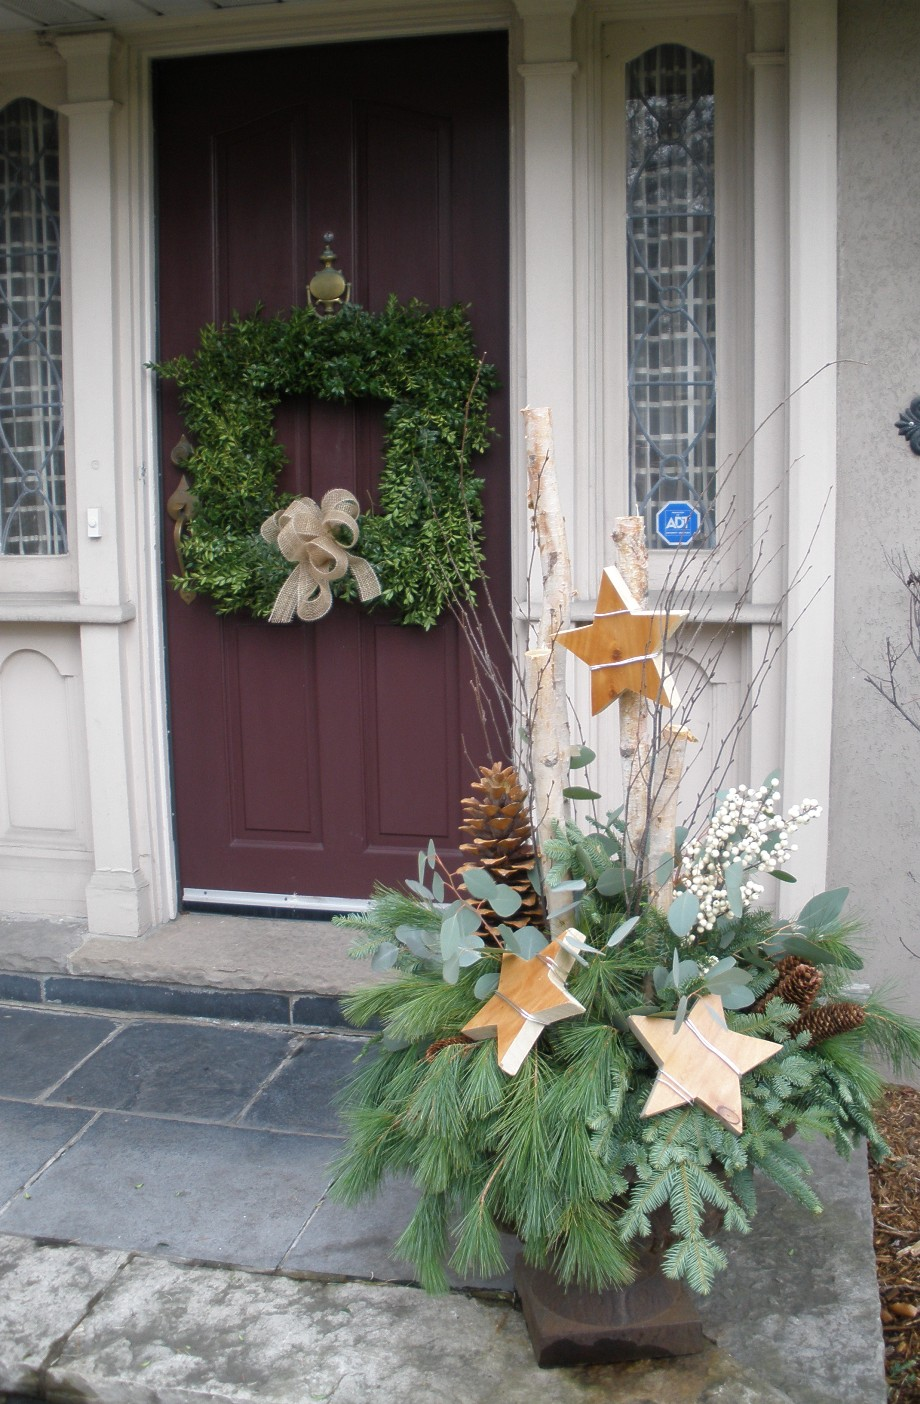 Outdoor Christmas Urns http://martinflowers.com/blog/2009/12/urn-arrangements-outdoors/